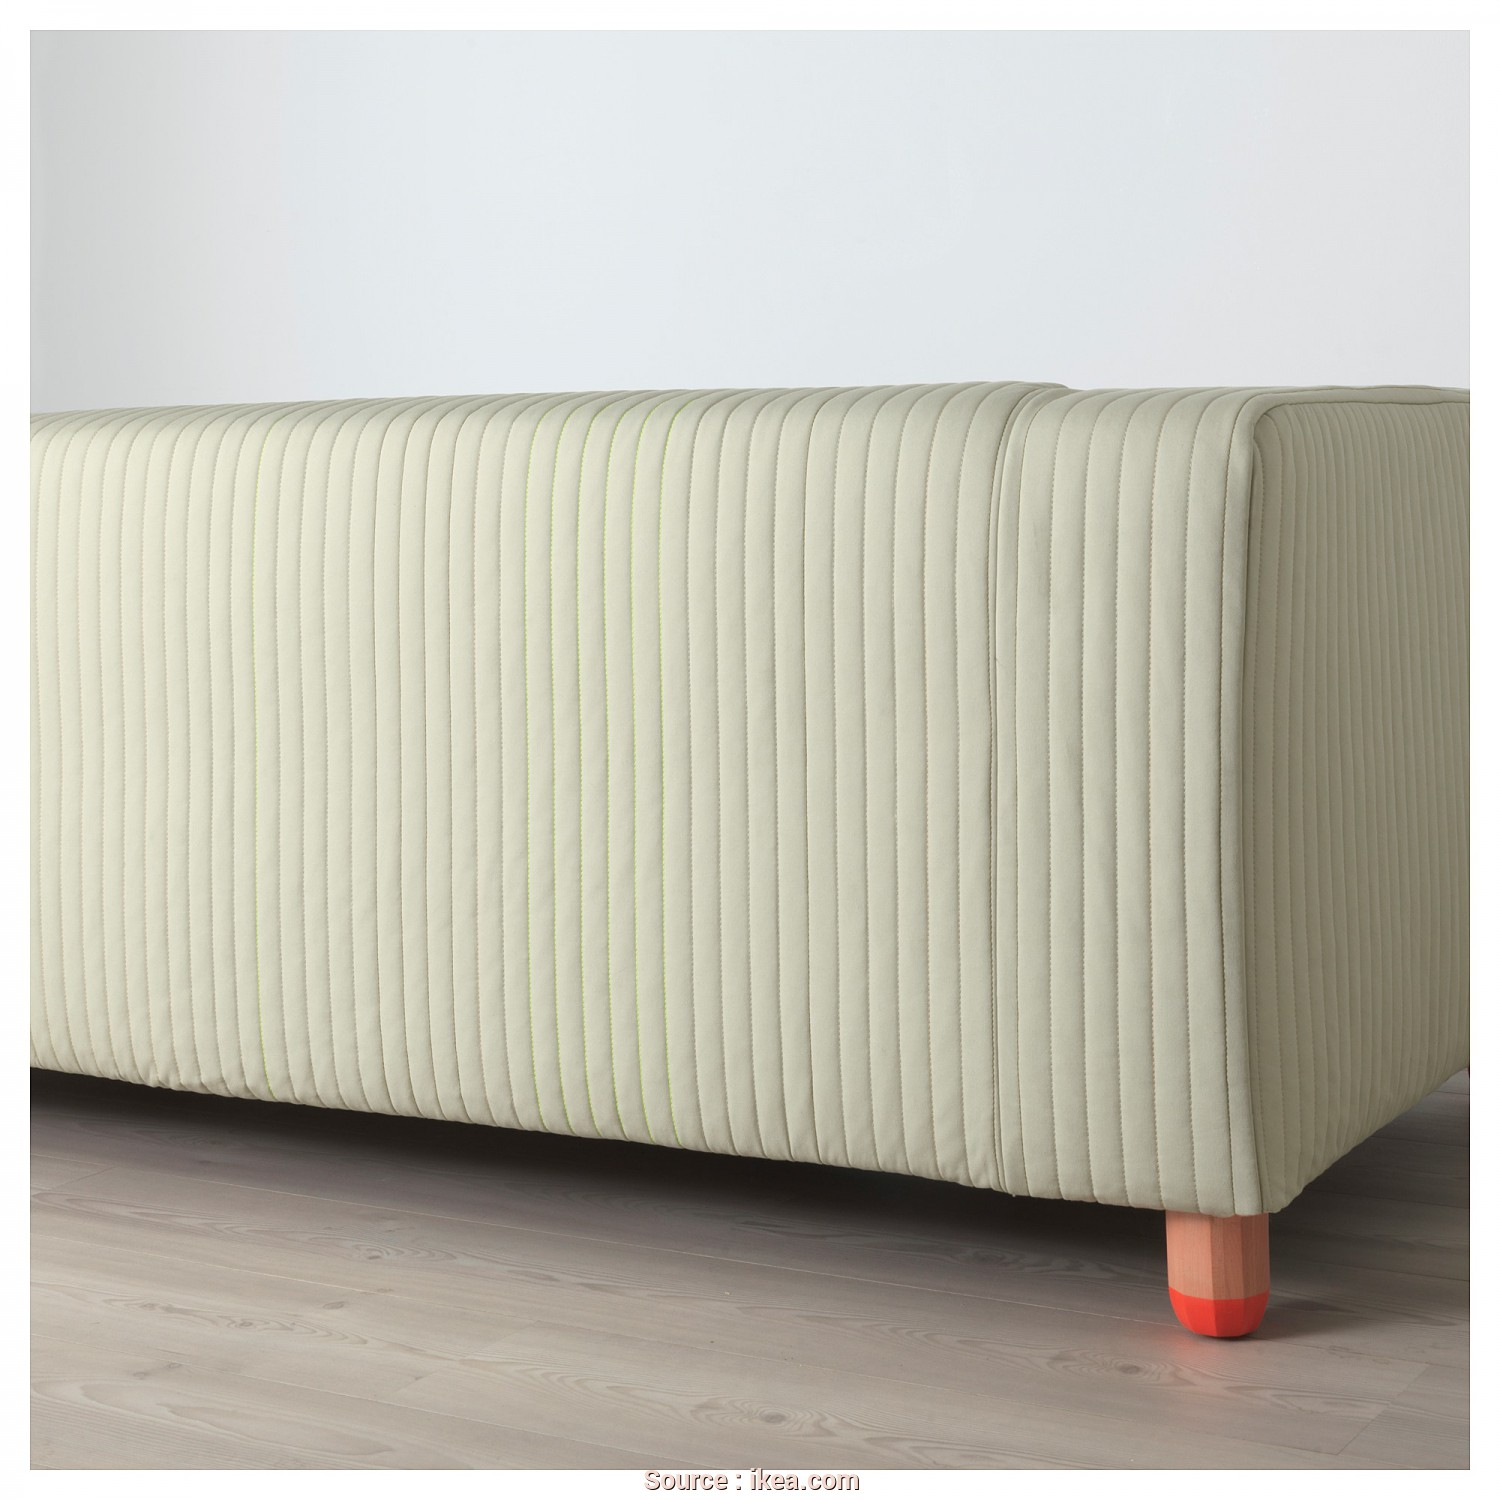 Klippan Ikea España, Buono IKEA KLIPPAN 2-Seat Sofa, Cover Is Easy To Keep Clean Since It Is